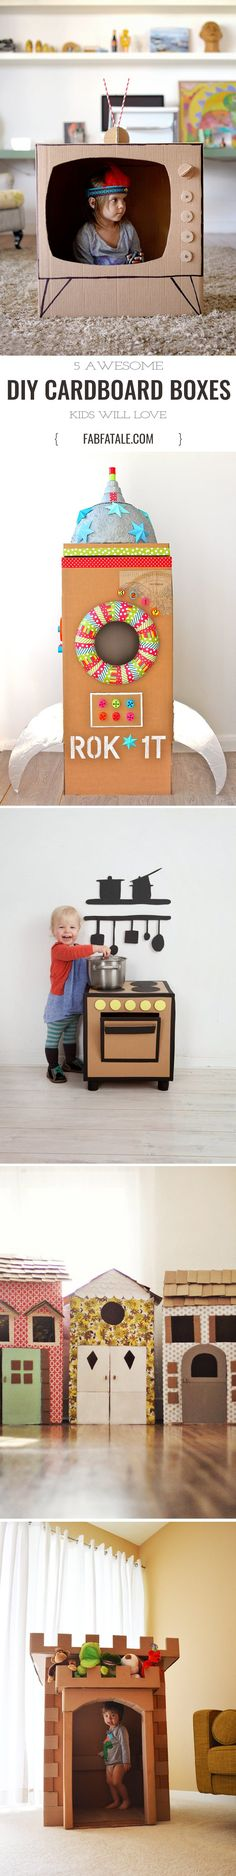 self play builds creativity - keep your toddler busy for hours in one of these diy cardboard box crafts